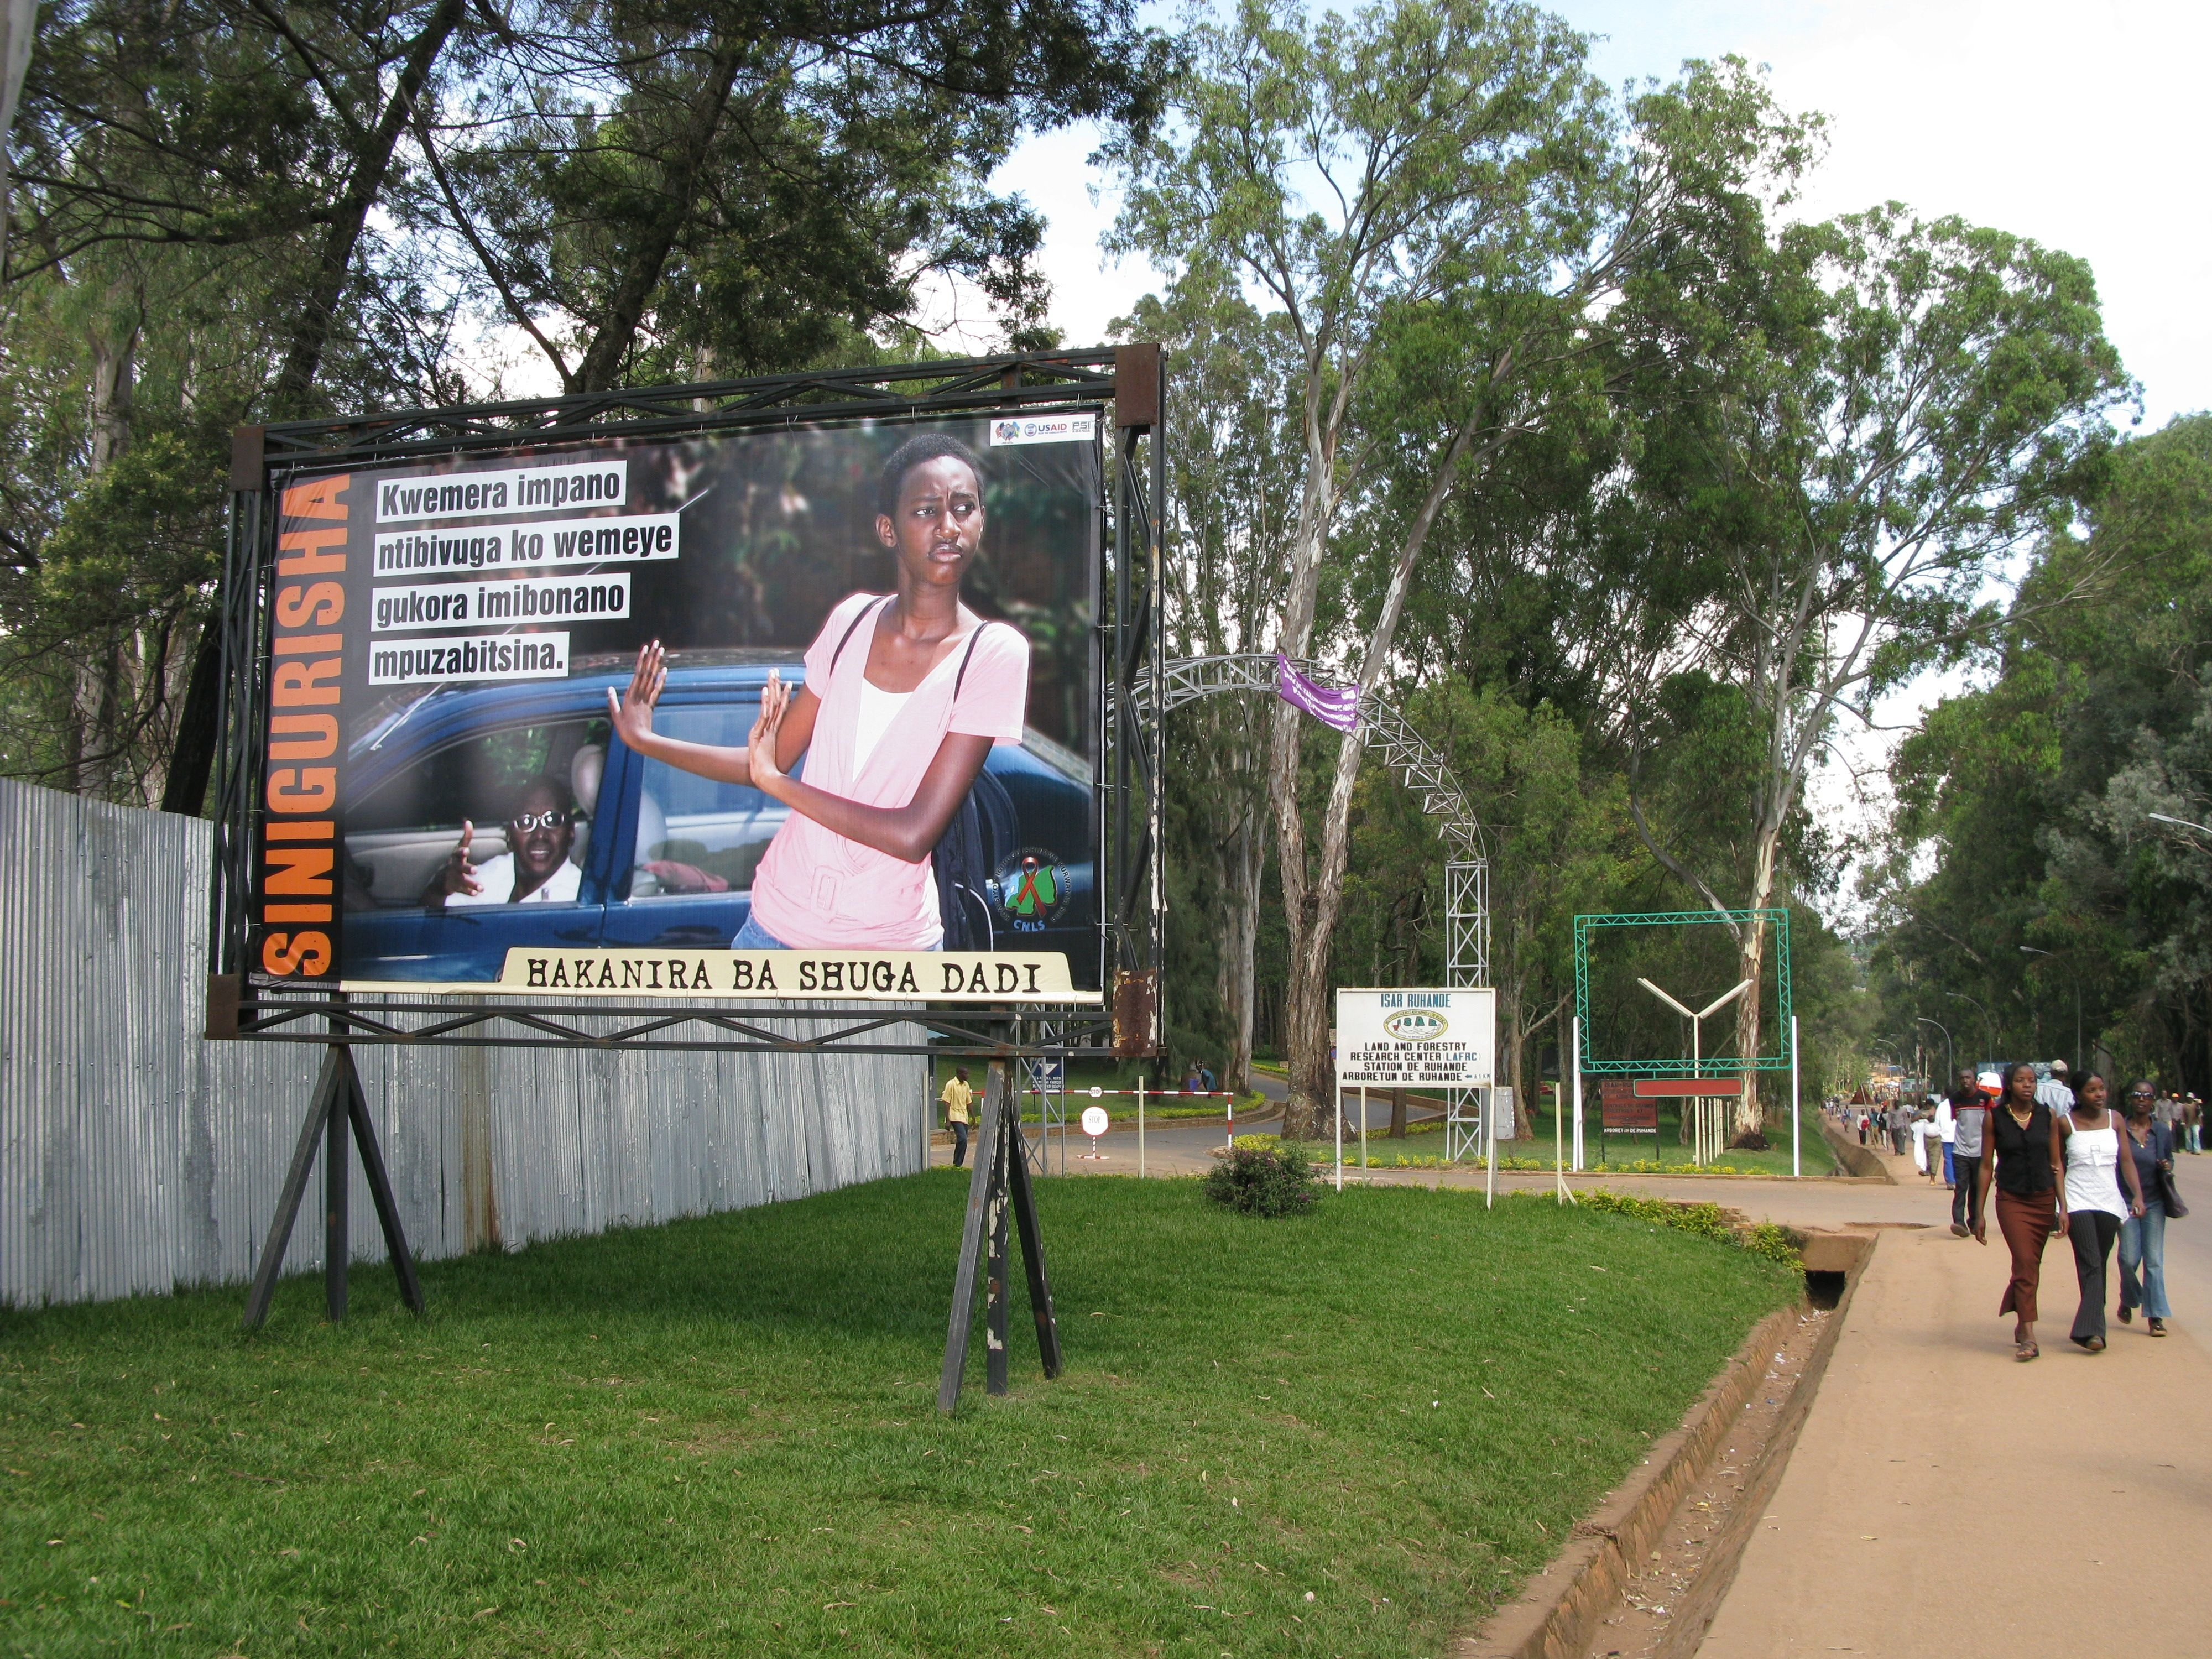 Anti-sugar daddy campaign poster outside the National University of Rwanda, Butare